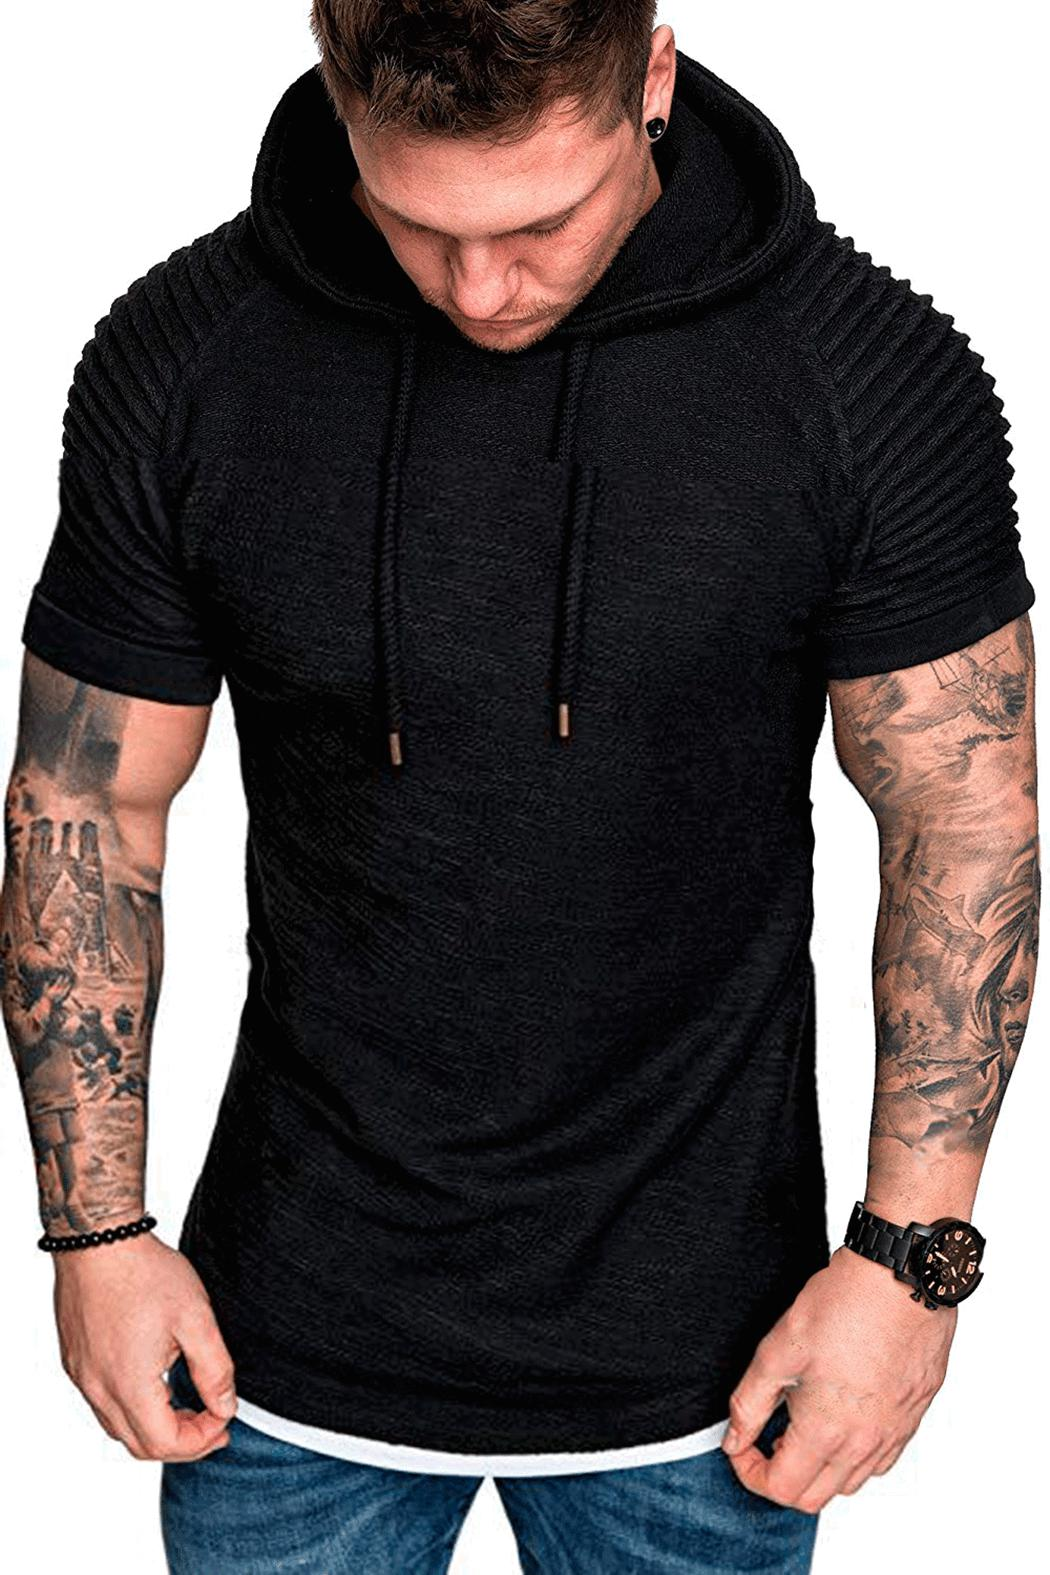 Japanese Style Men/'s Hooded Short Sleeve T-shirt Students Summer Tops Plus Size